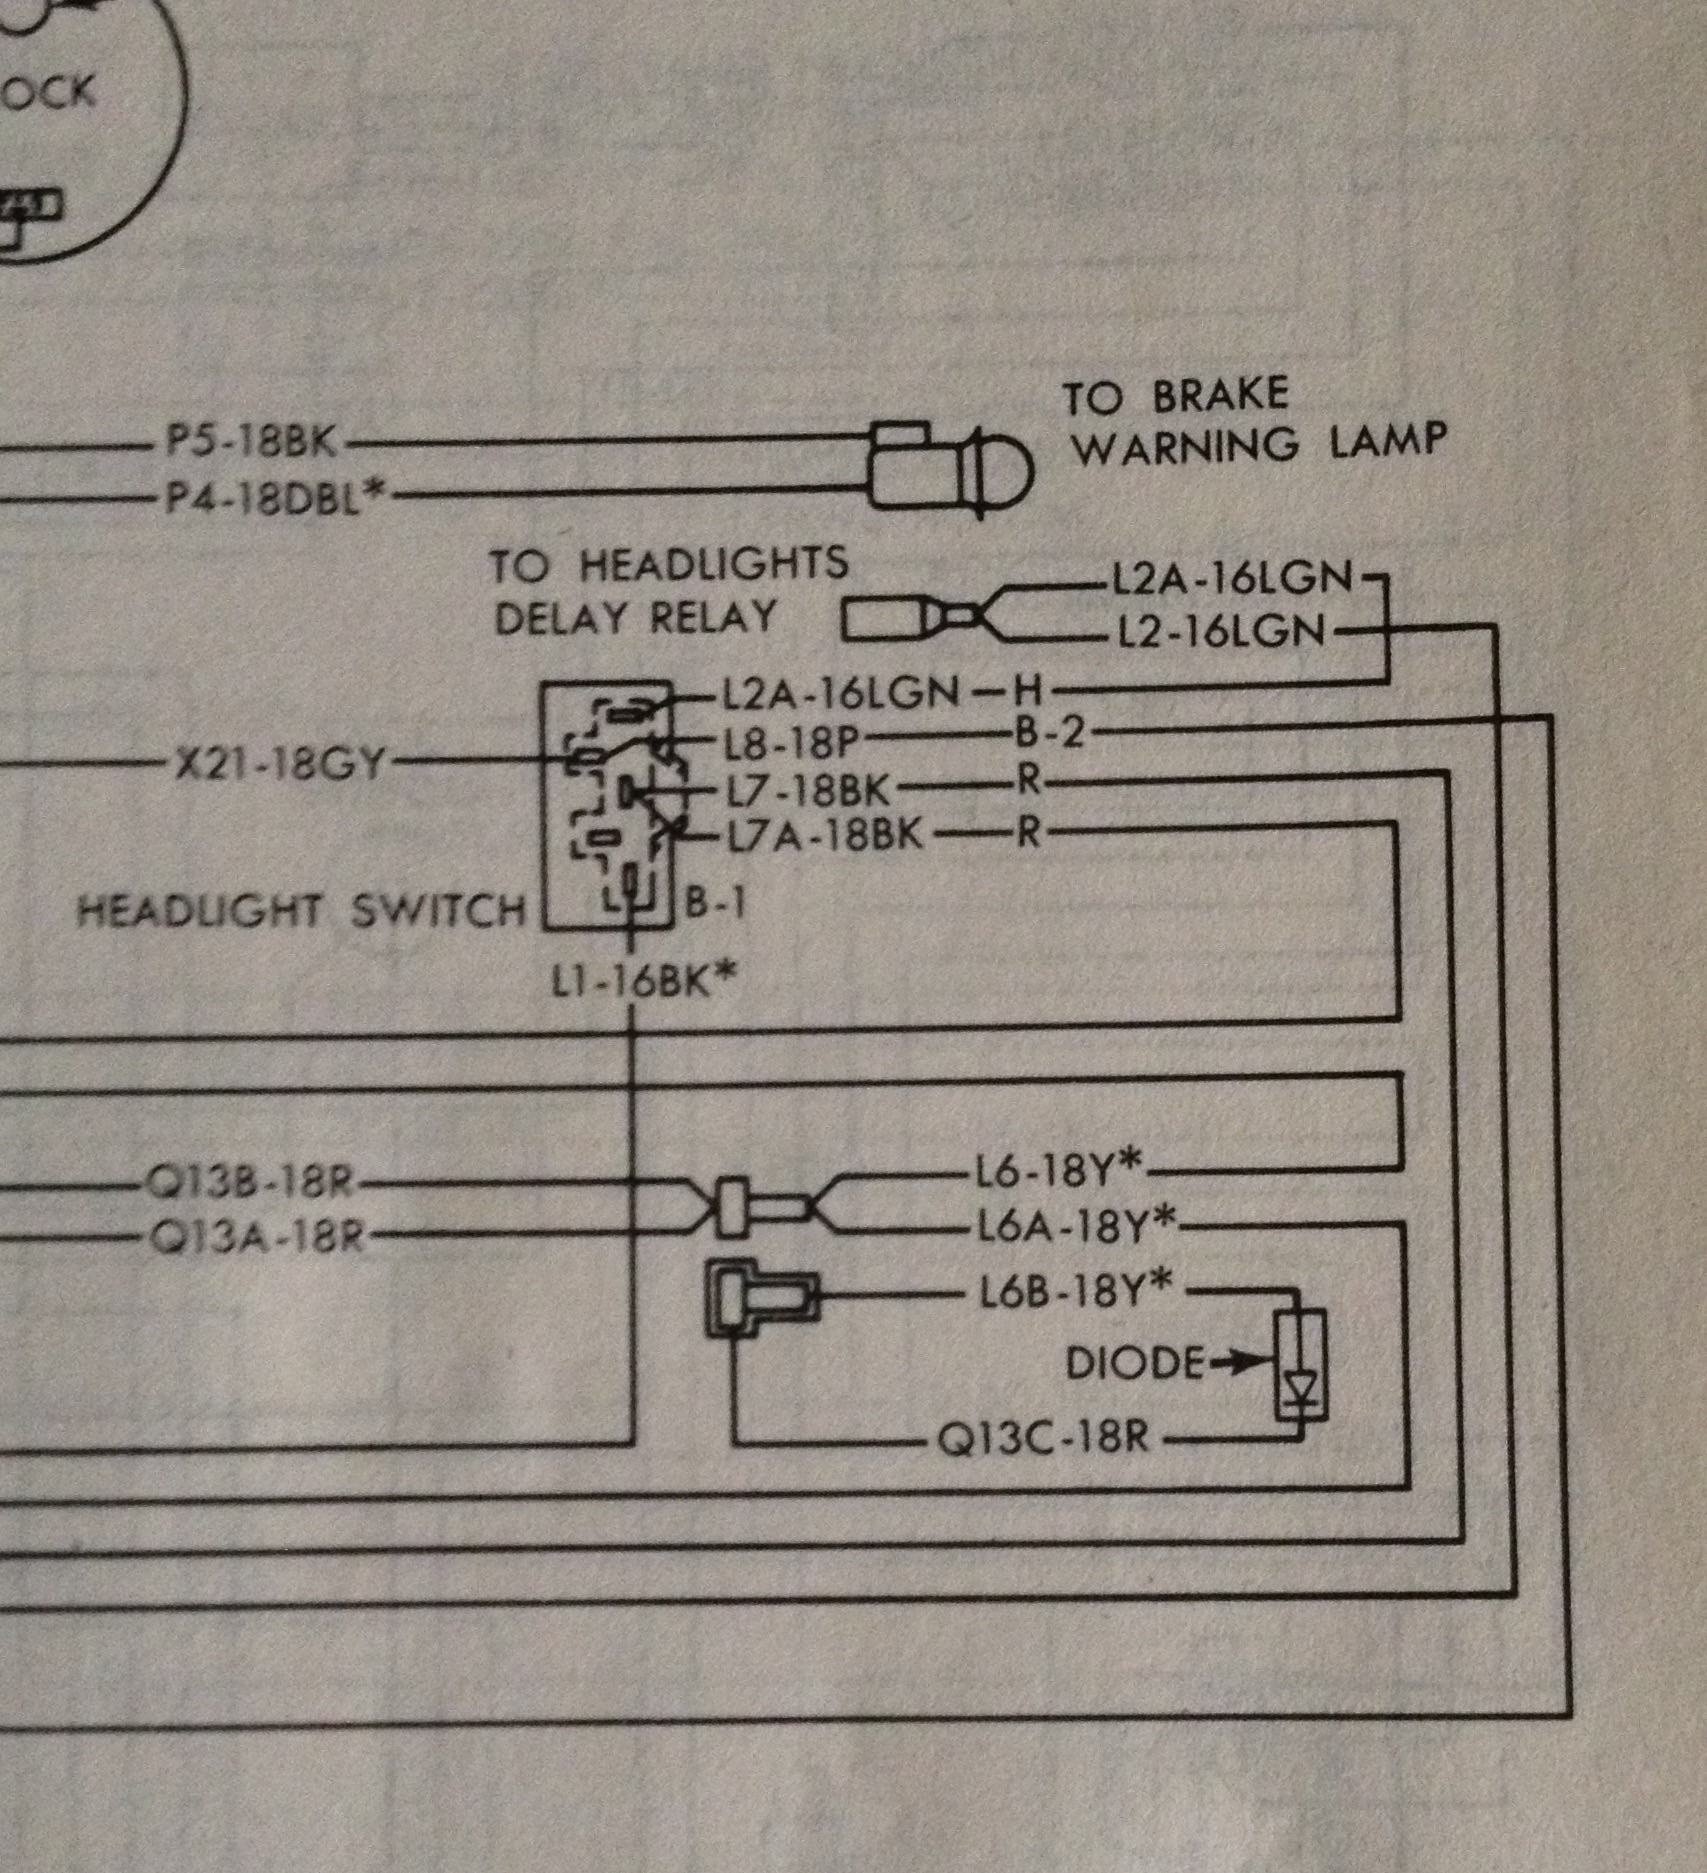 2008 can am outlander 650 wiring diagram 97 ford f150 power window rally get free image about